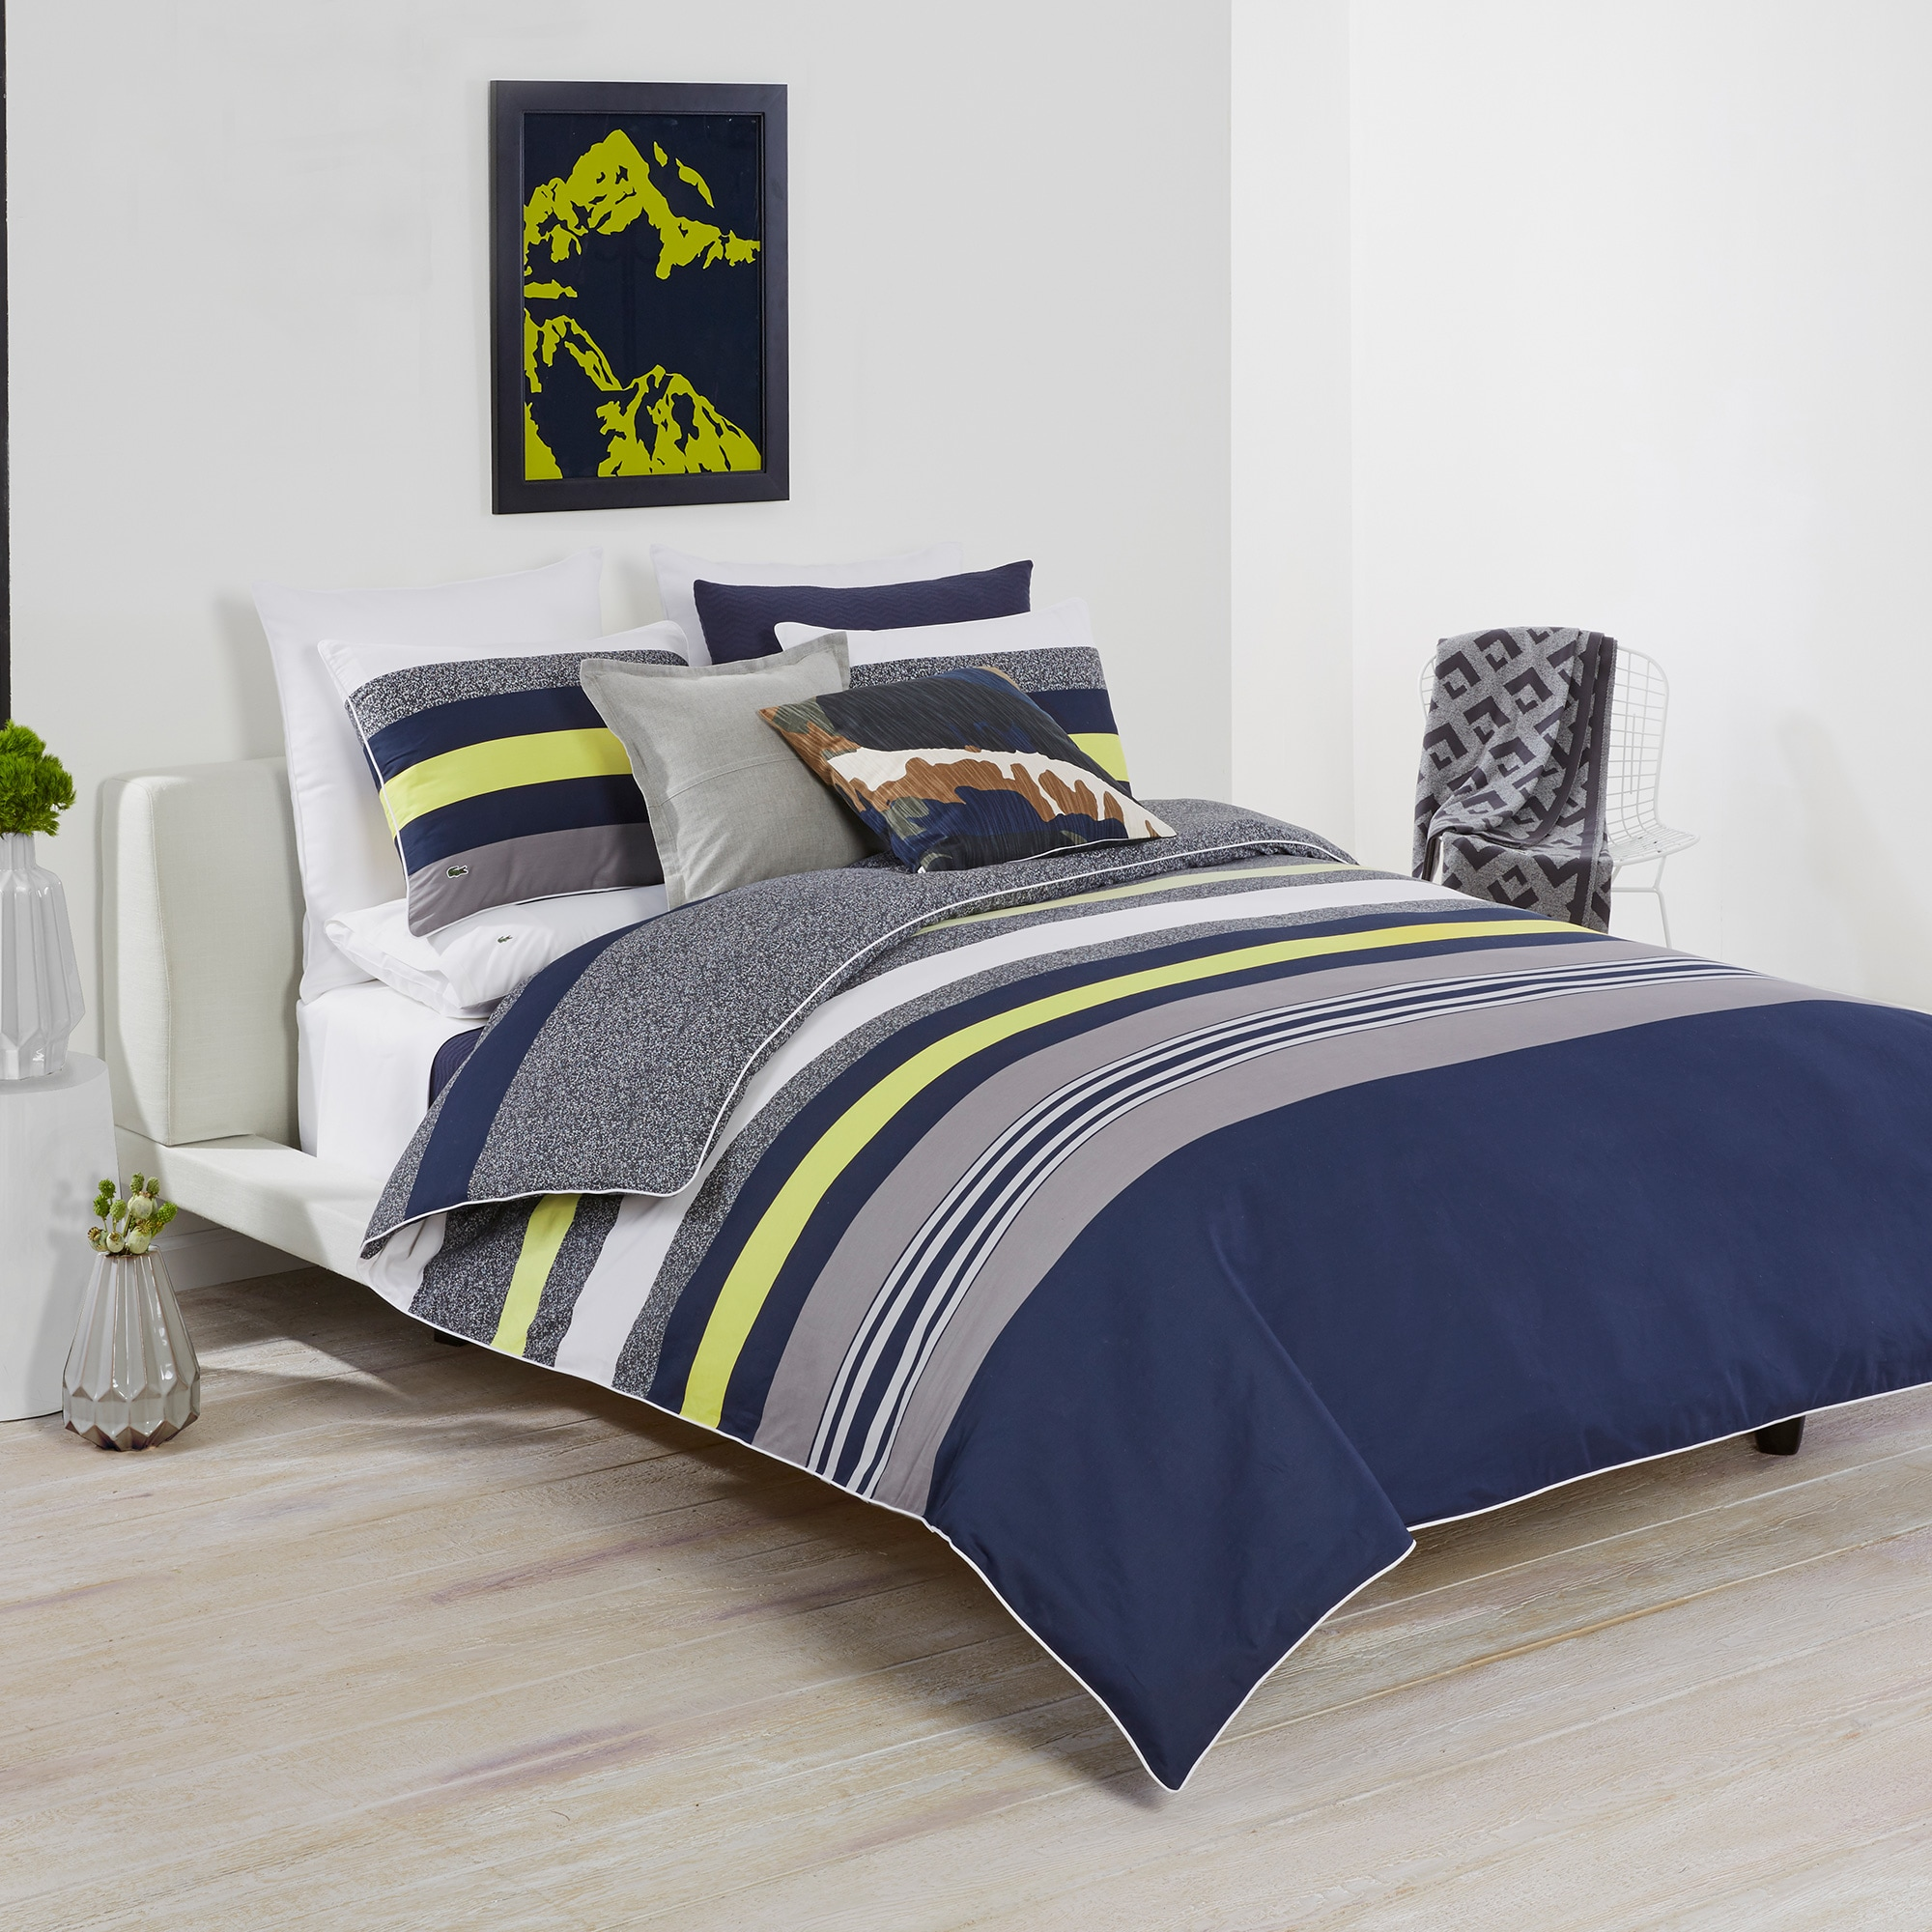 Tigne King Duvet Set